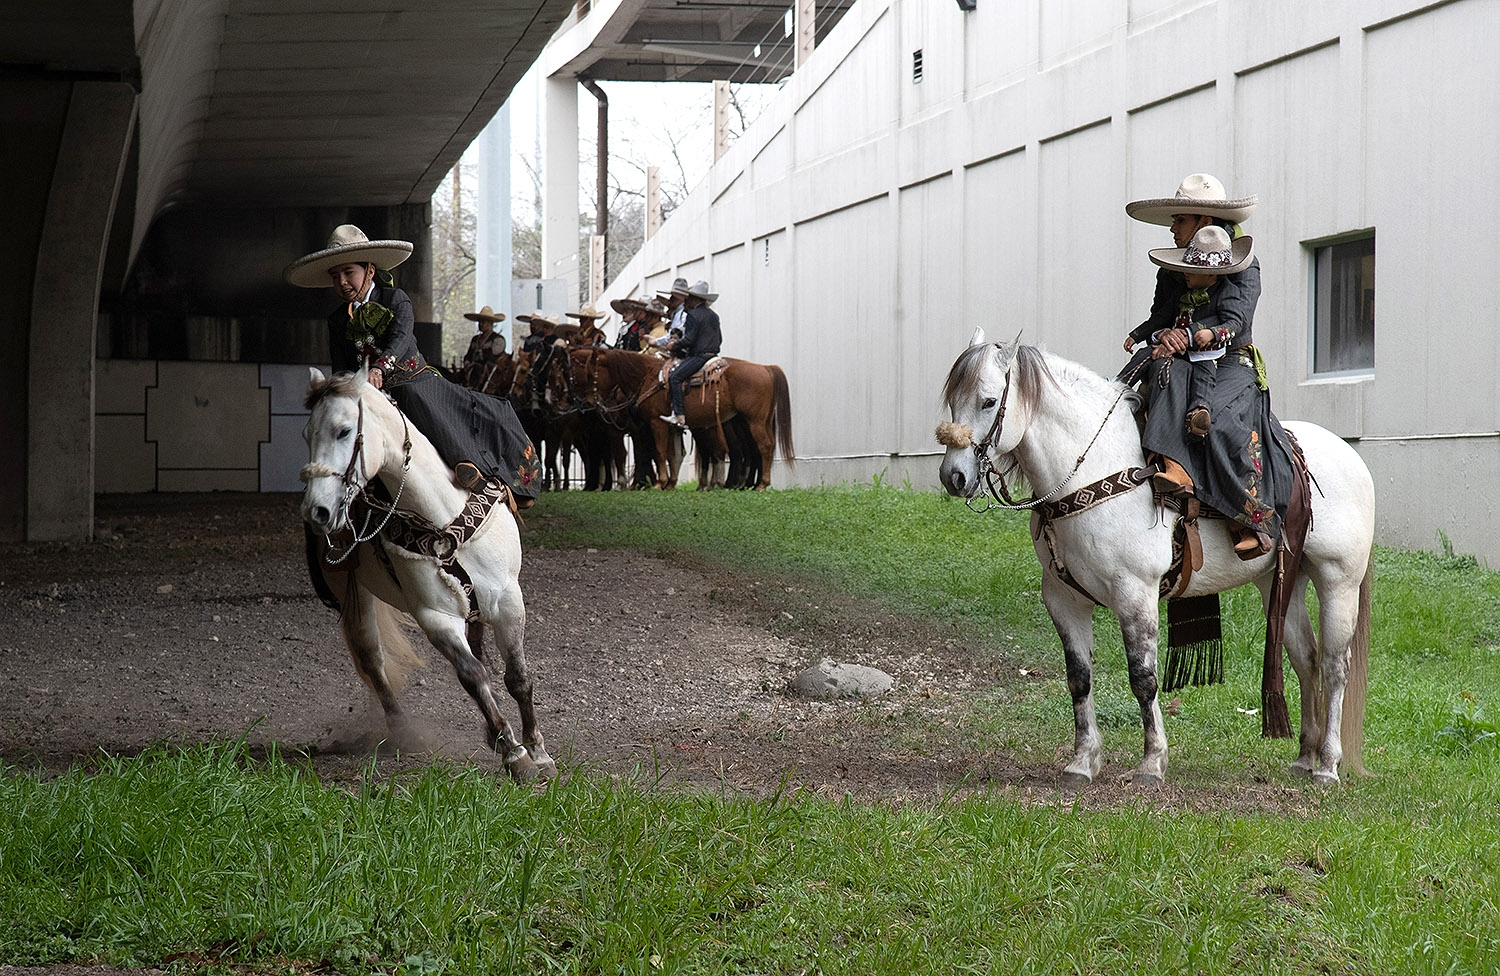 Jasmine Medina, 12, member of Charros de Bejar, practices before the Western Heritage Parade and Cattle Drive Feb. 2 under I-35 at Houston St. <em><b>Photo by V. Finster | Heron</b></em>